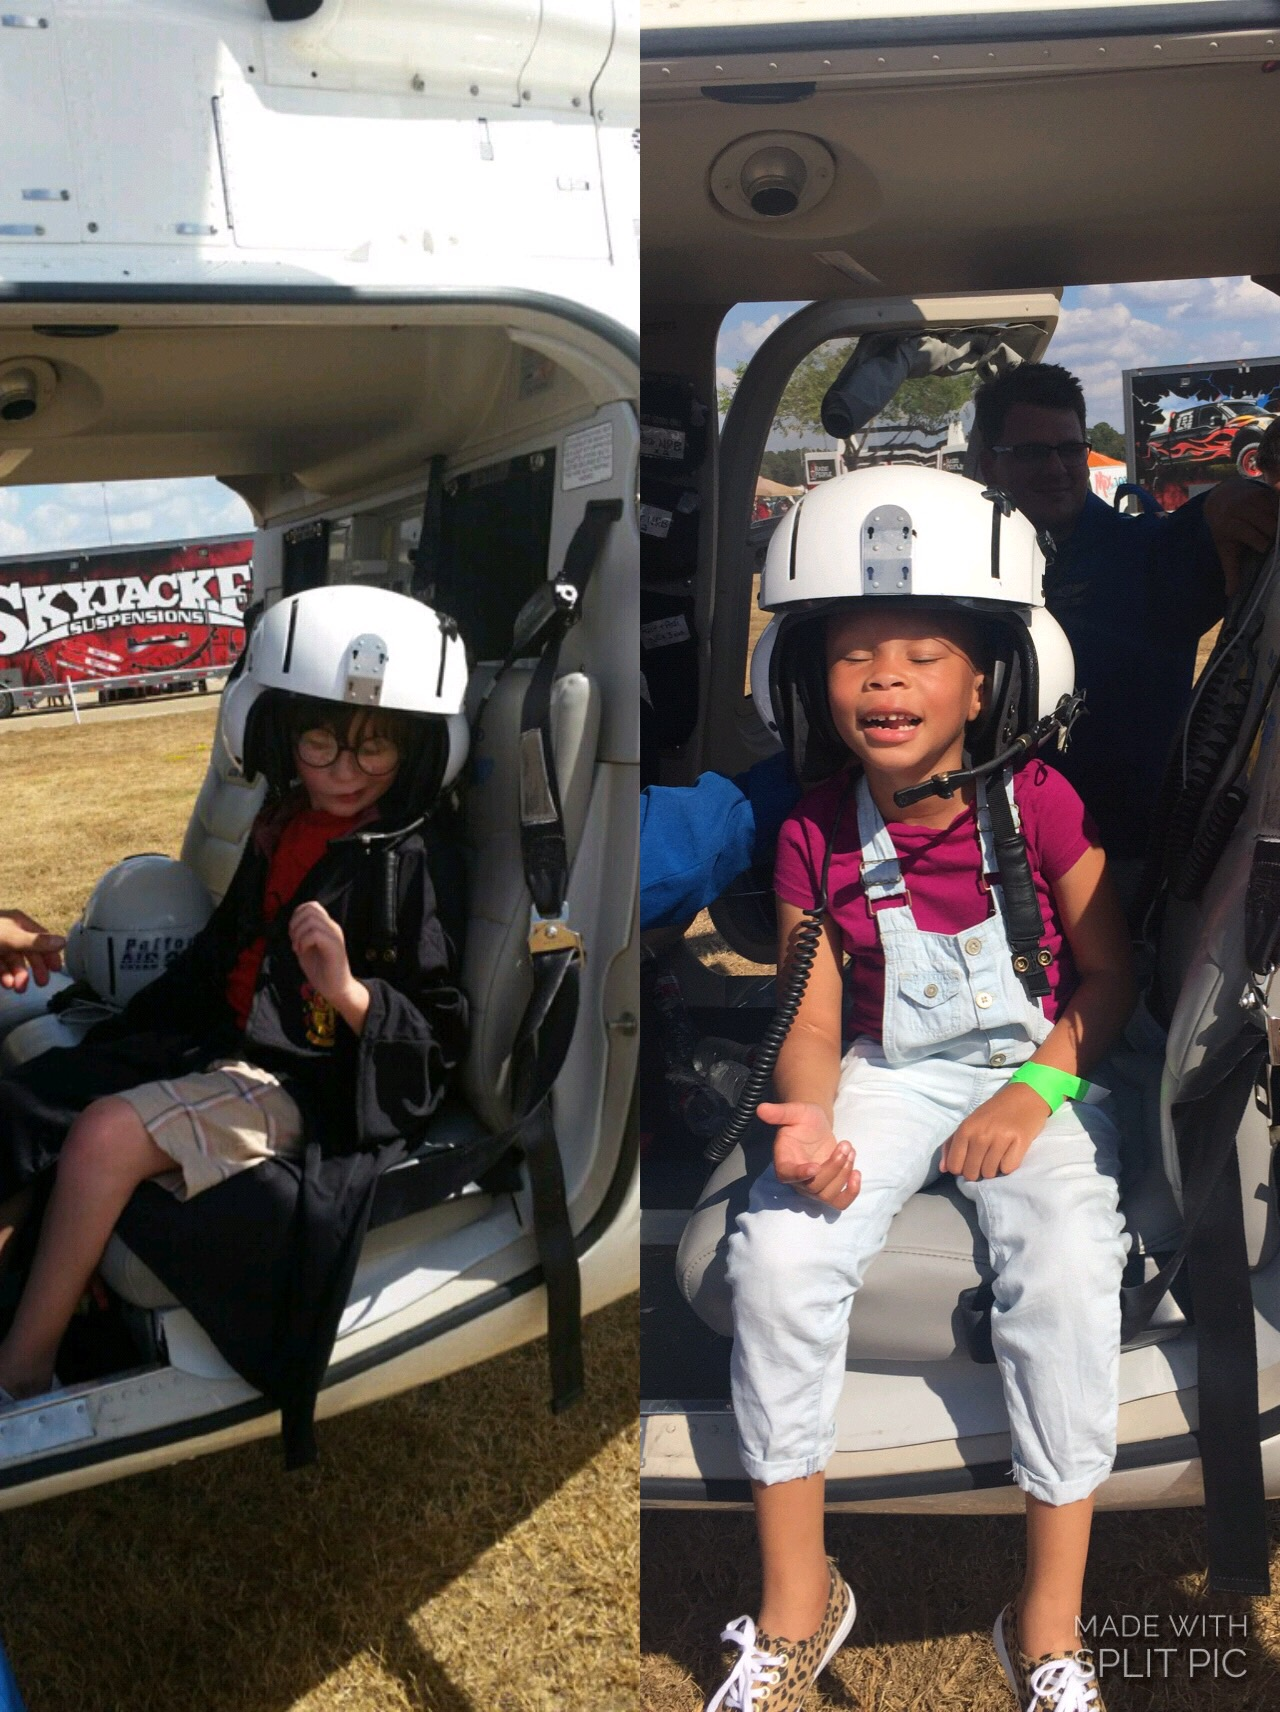 A split picture of Jordan and Passion sitting in a helicopter. Both are wearing the helmet, complete with headset.